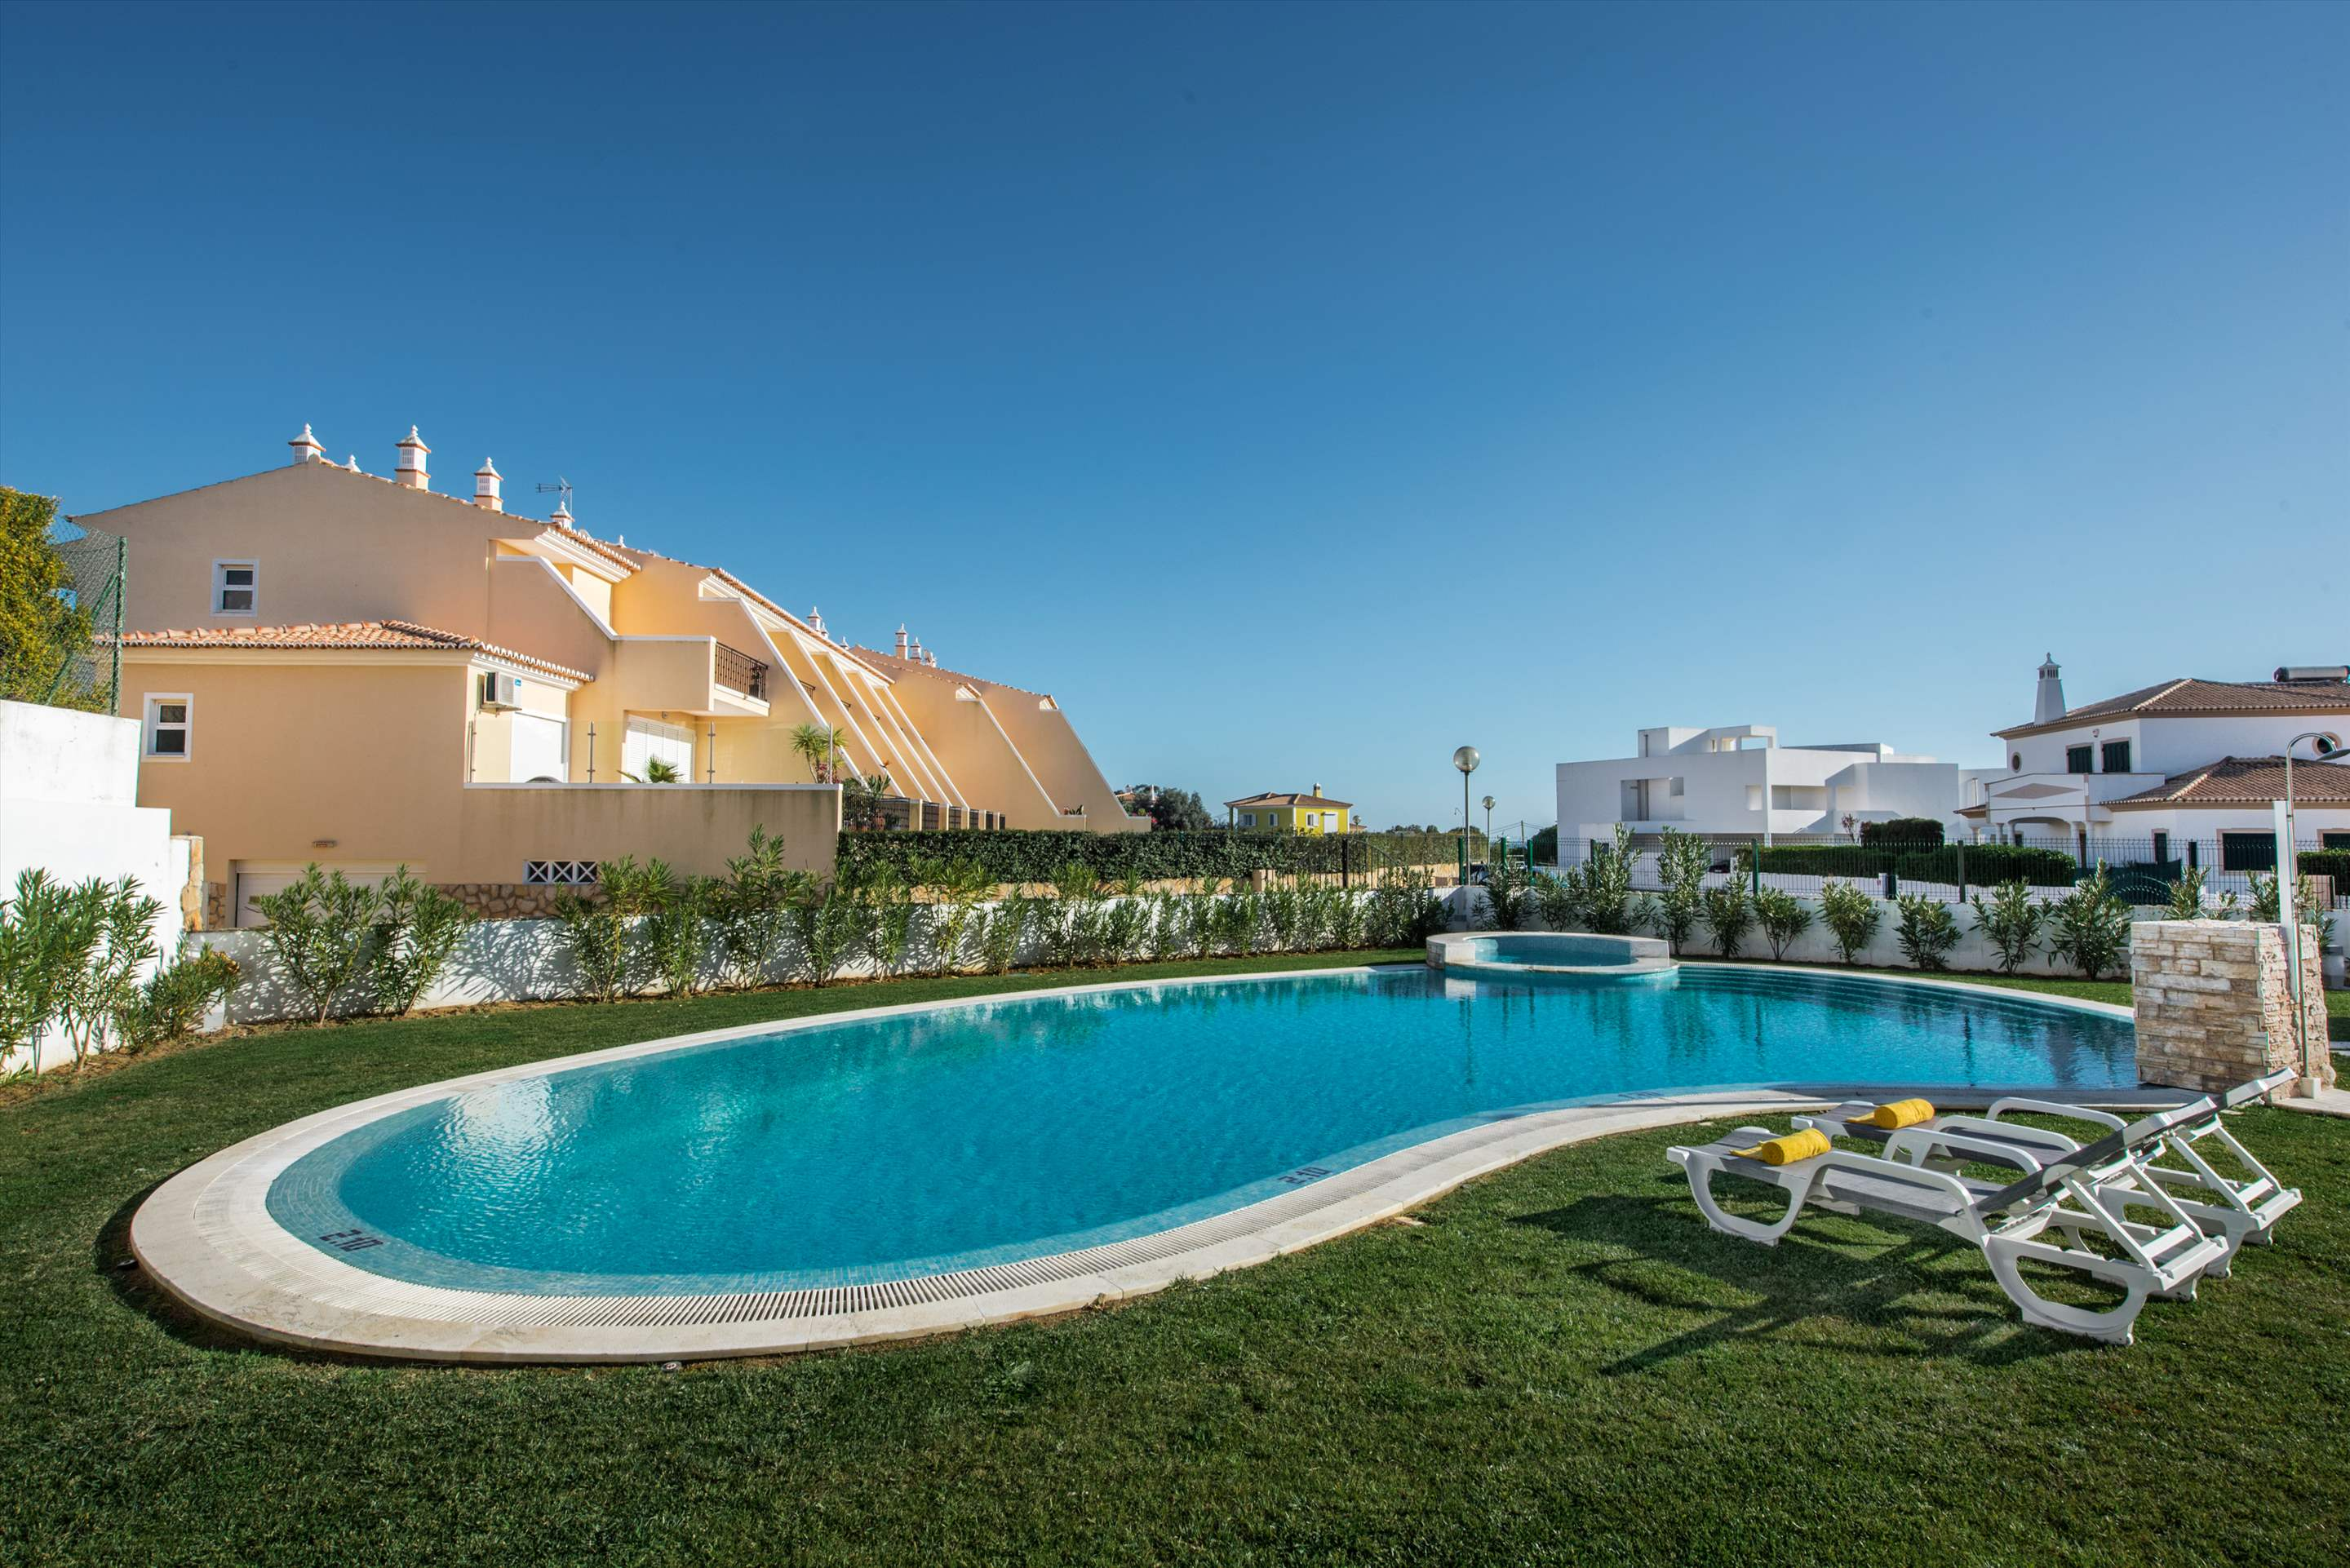 Townhouse Rosal 'D', 2 bedroom villa in Gale, Vale da Parra and Guia, Algarve Photo #13